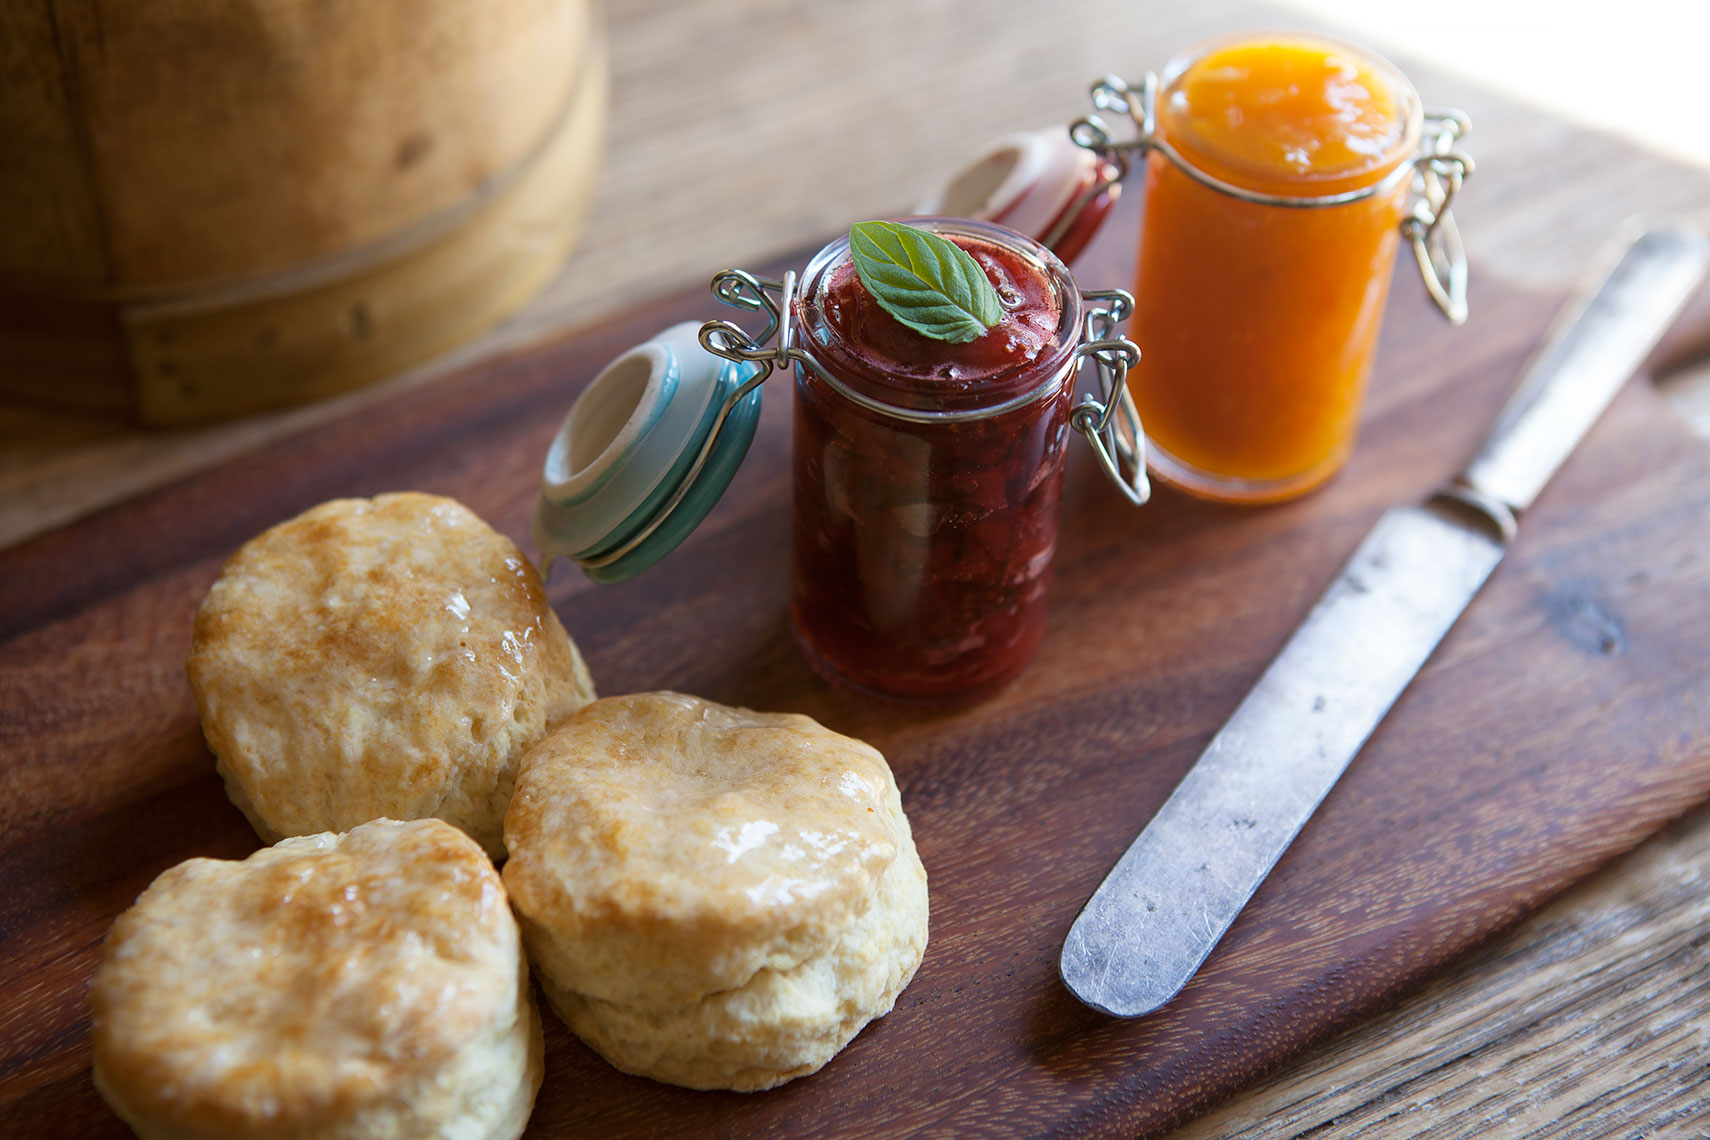 Fresh_Bisquits_and_Jam_Boards